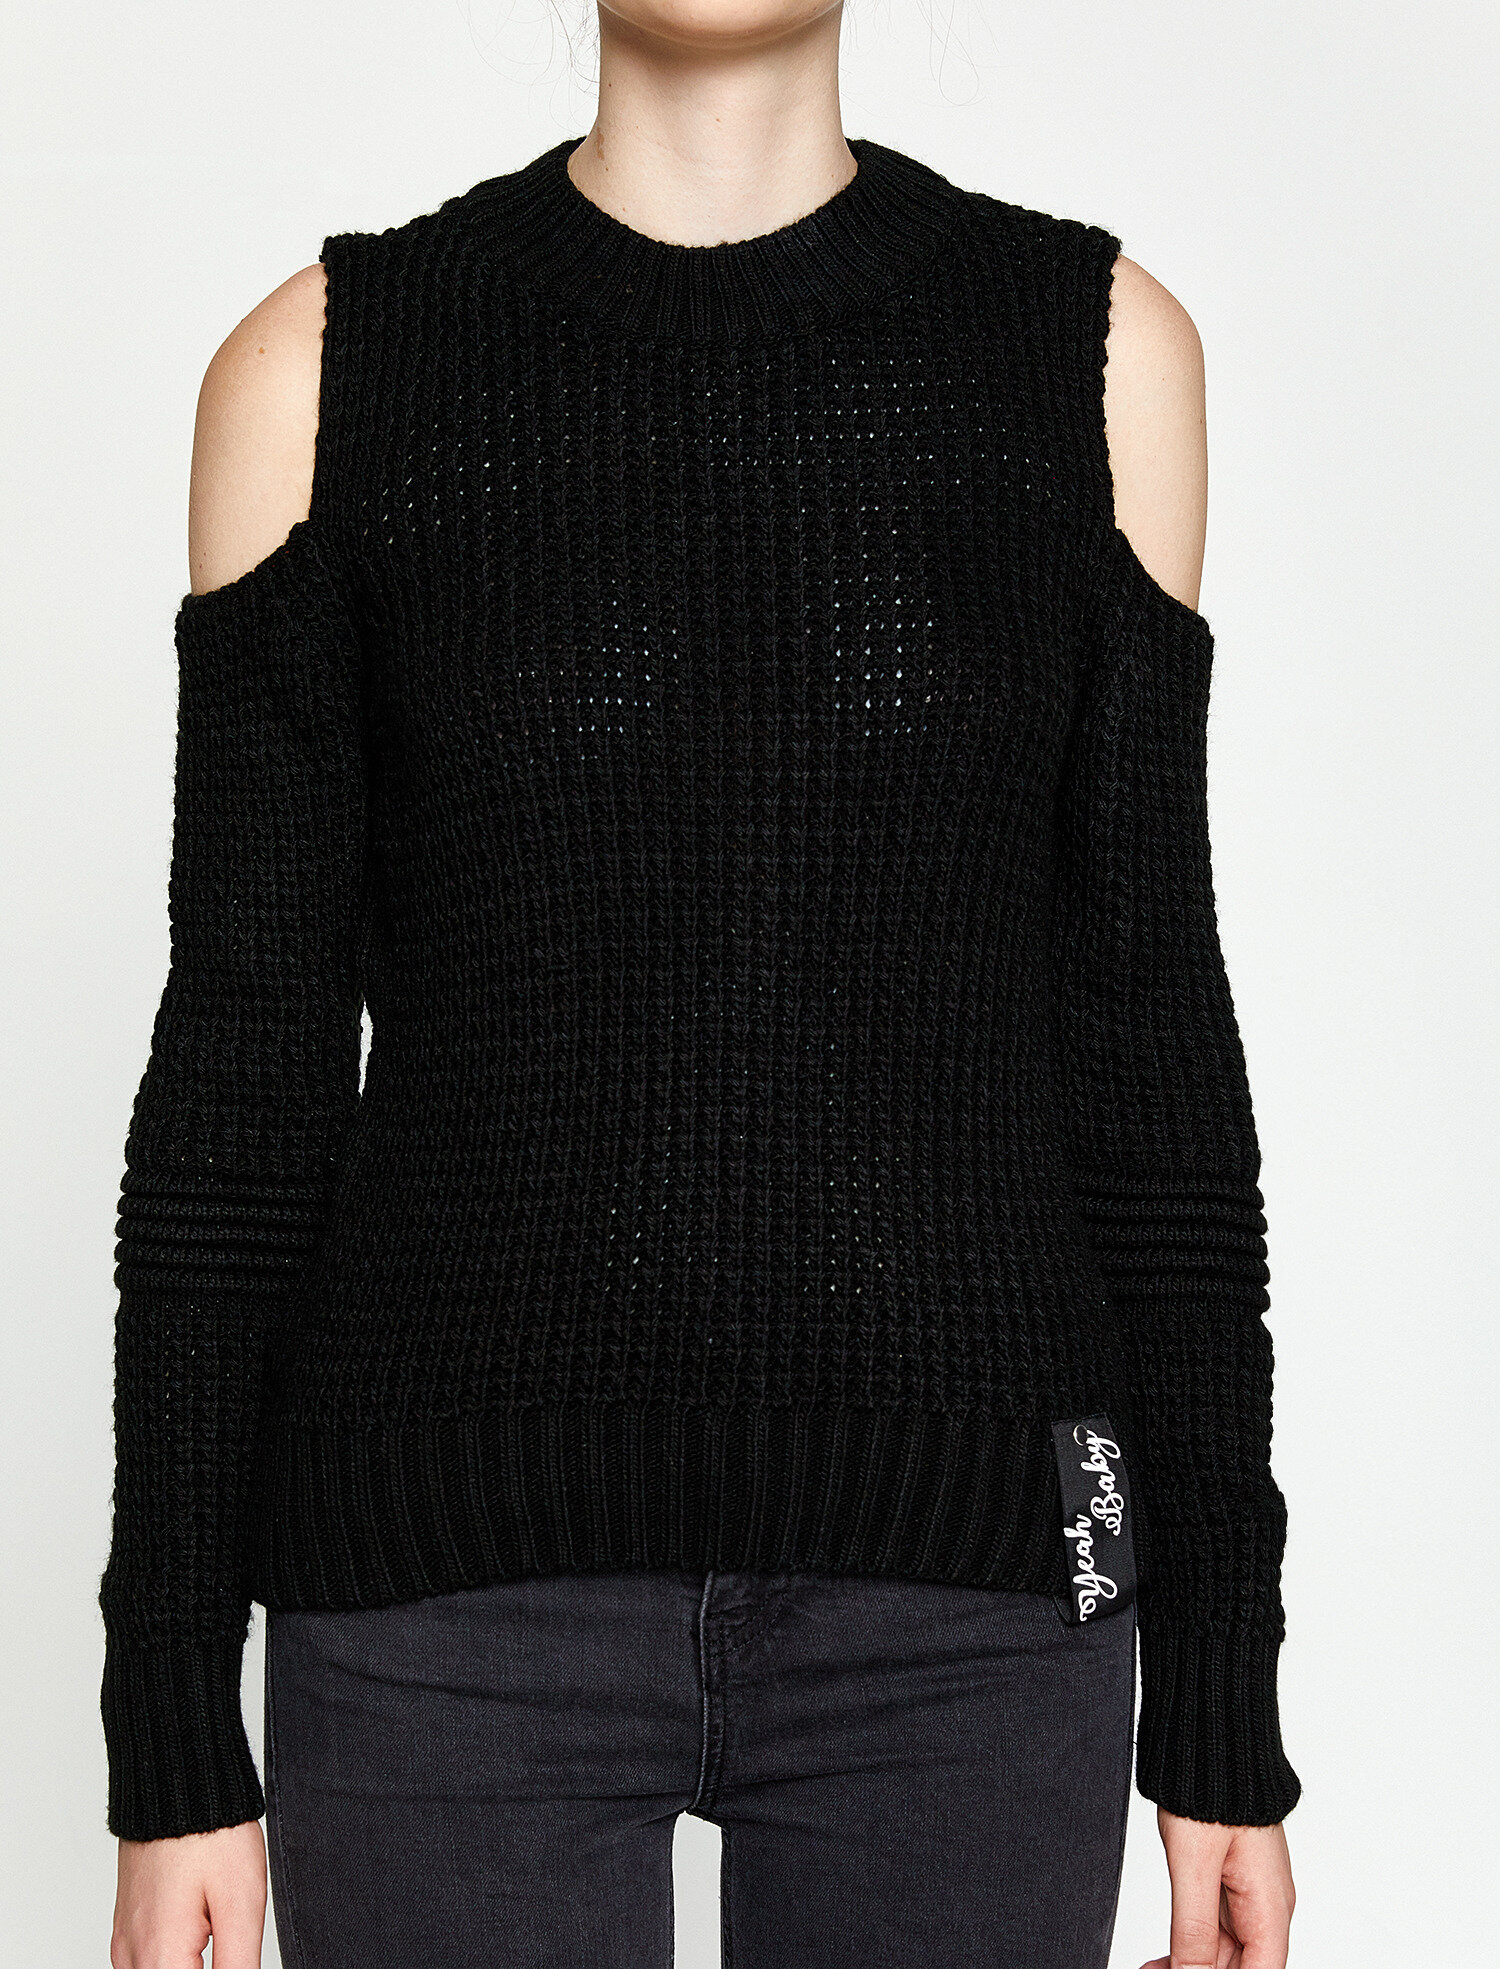 knitted sweater. pic 1; pic 2 ...